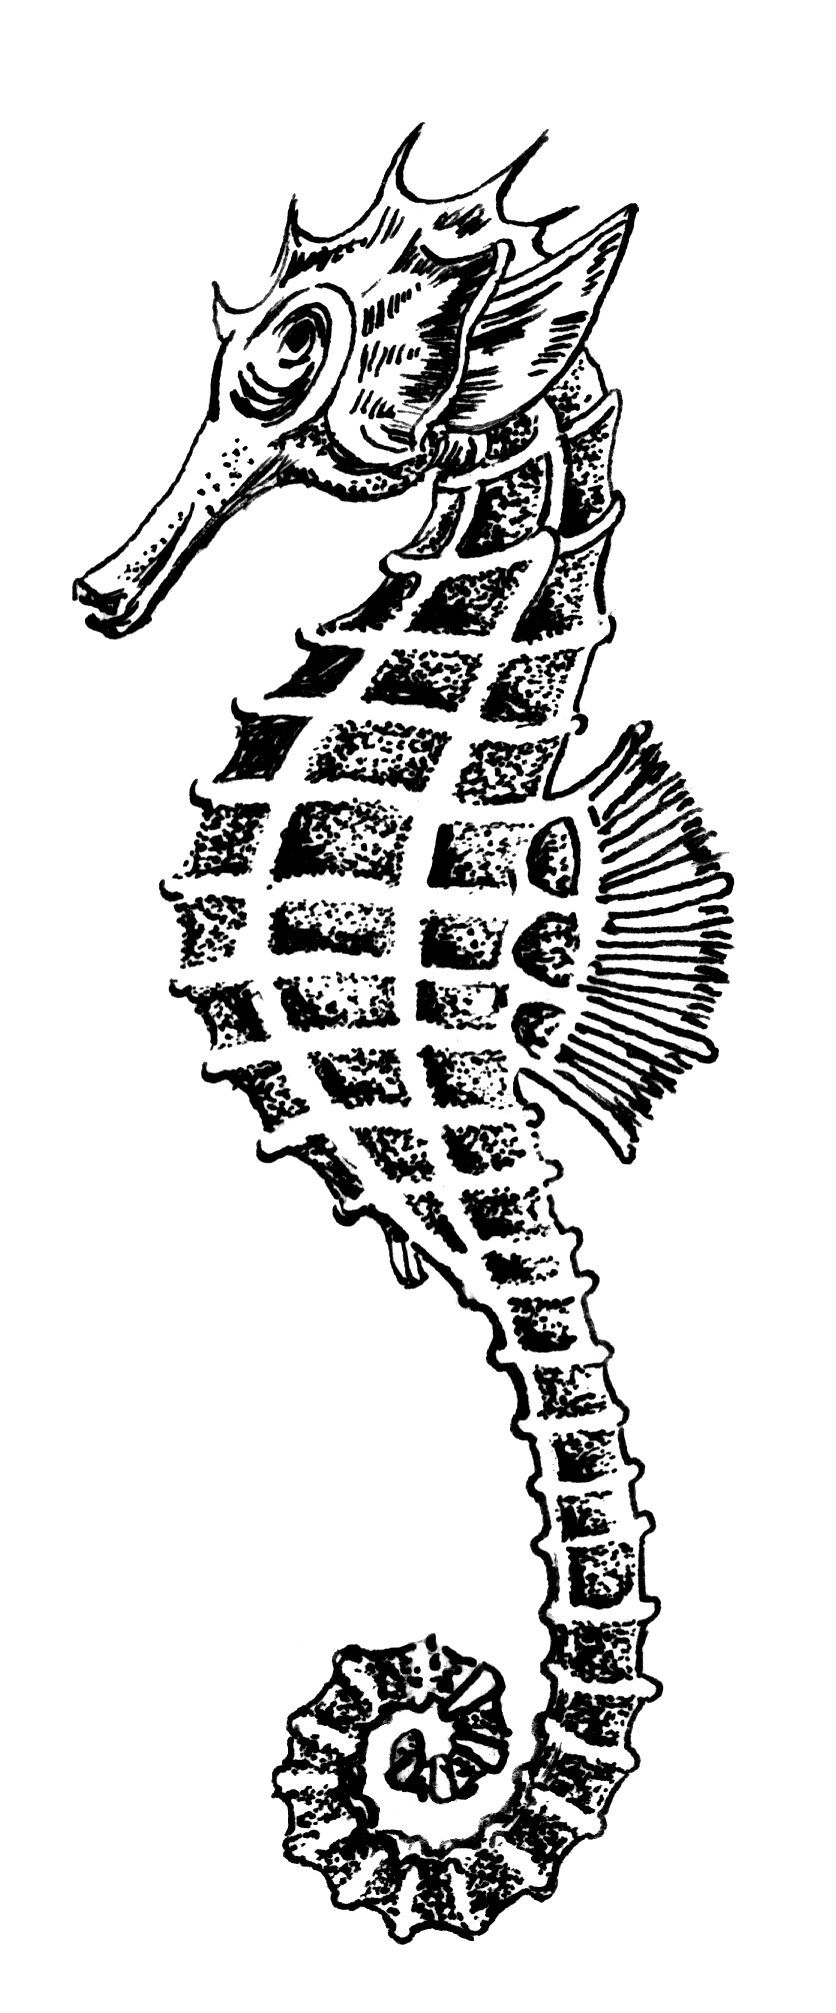 File Sea Horse 1 Psf S 820006 Png Wikimedia Commons Seahorse Art Seahorse Painting Seahorse Drawing